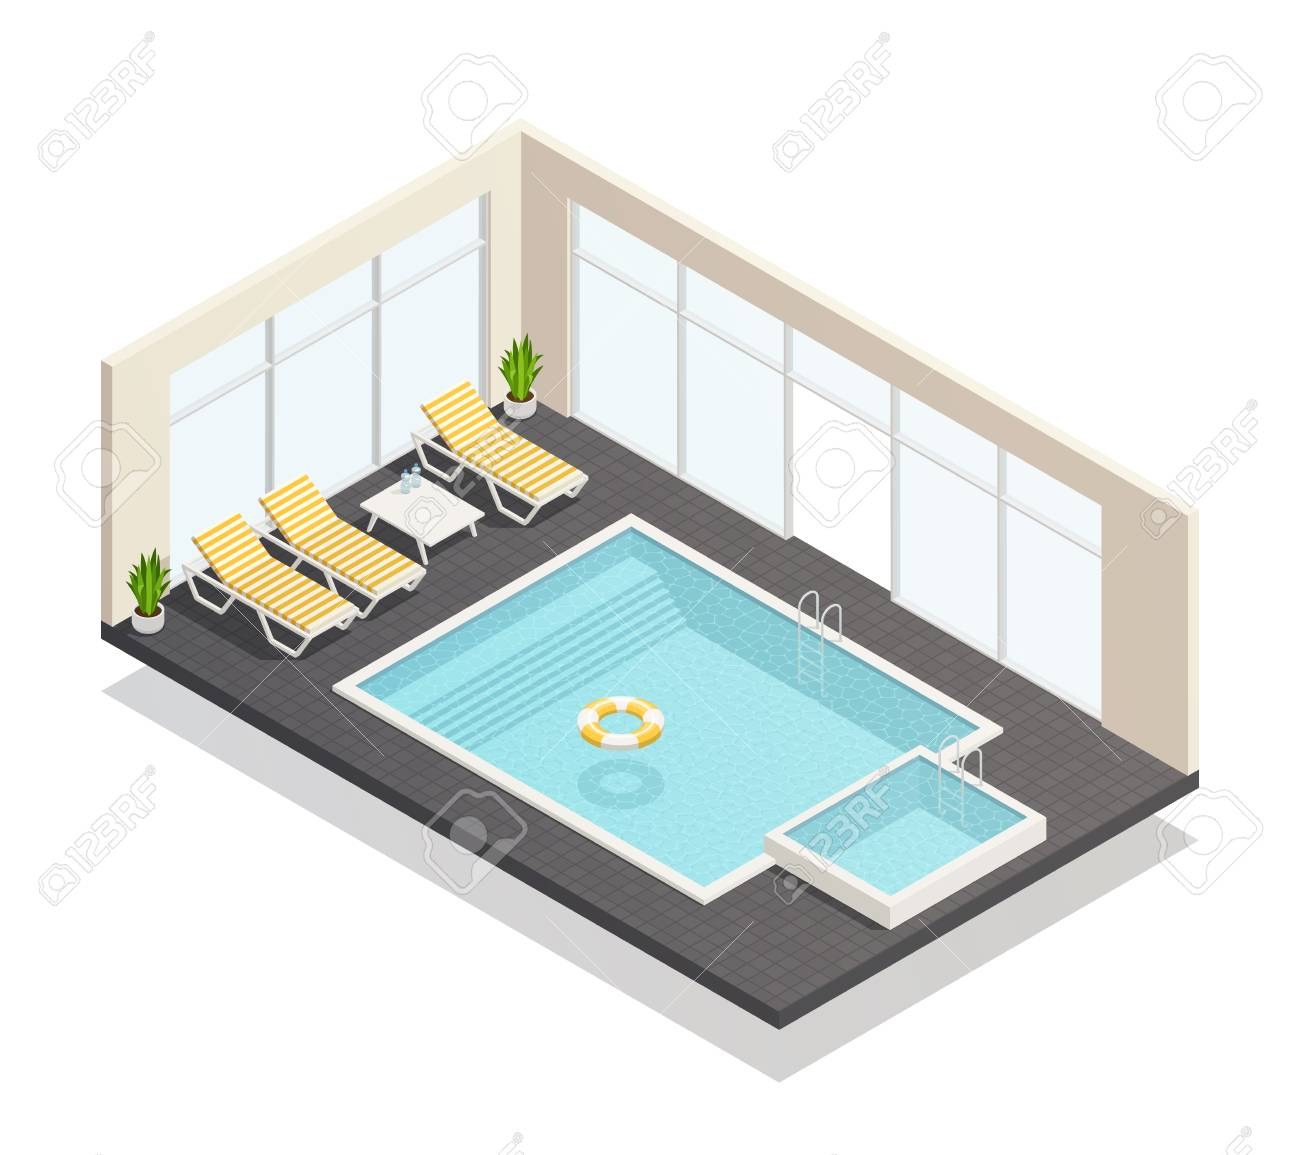 Recreation Indoor Swimming Pool And Fun Bath With Poolside Lounge ...